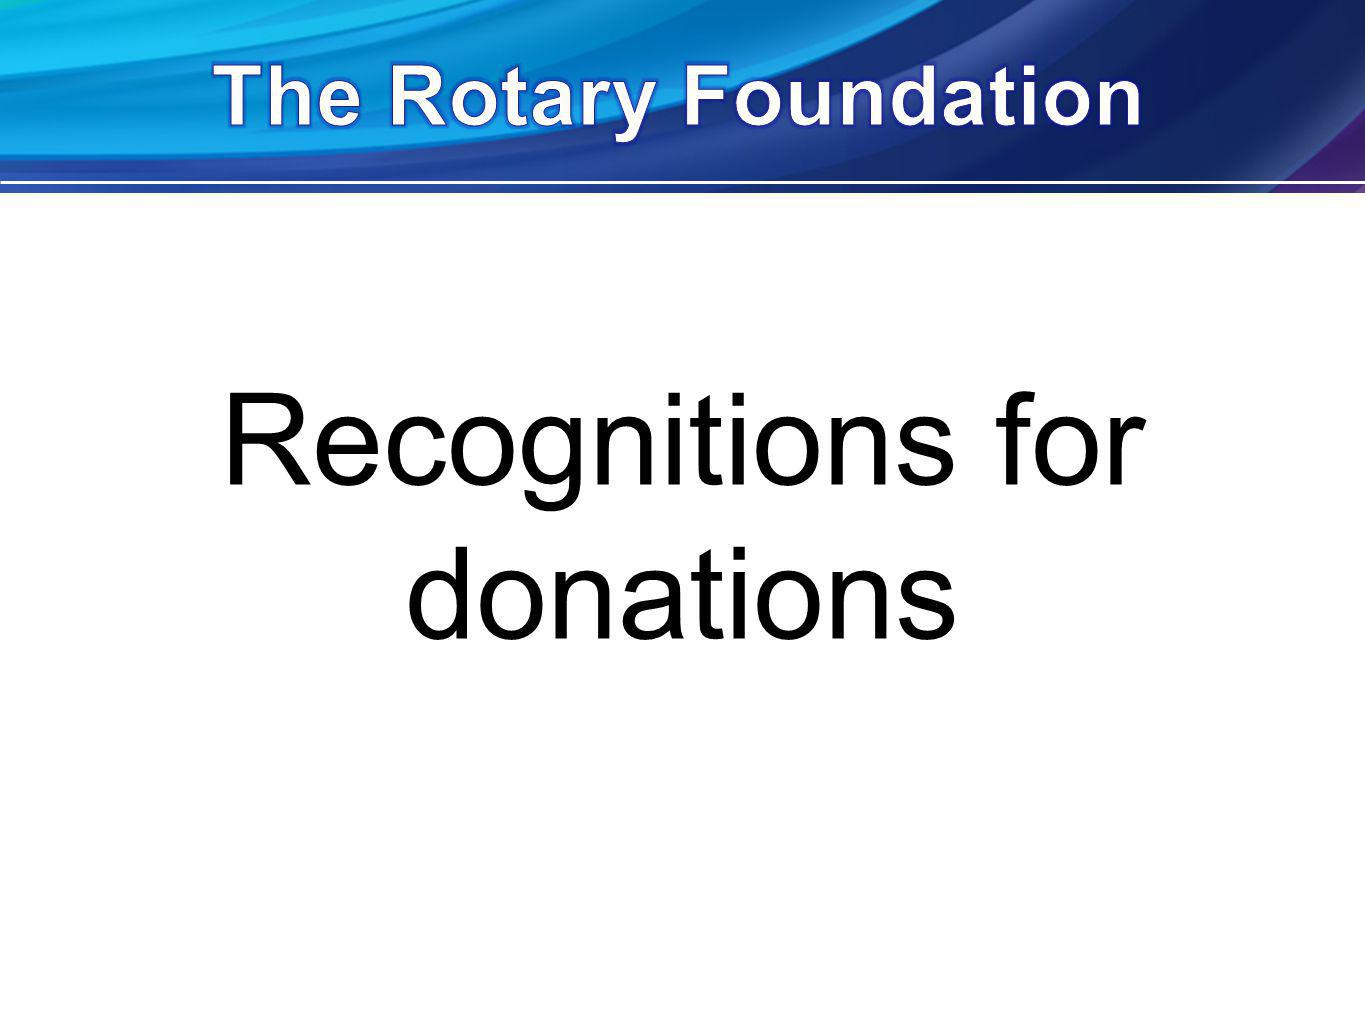 Recognitions for donations